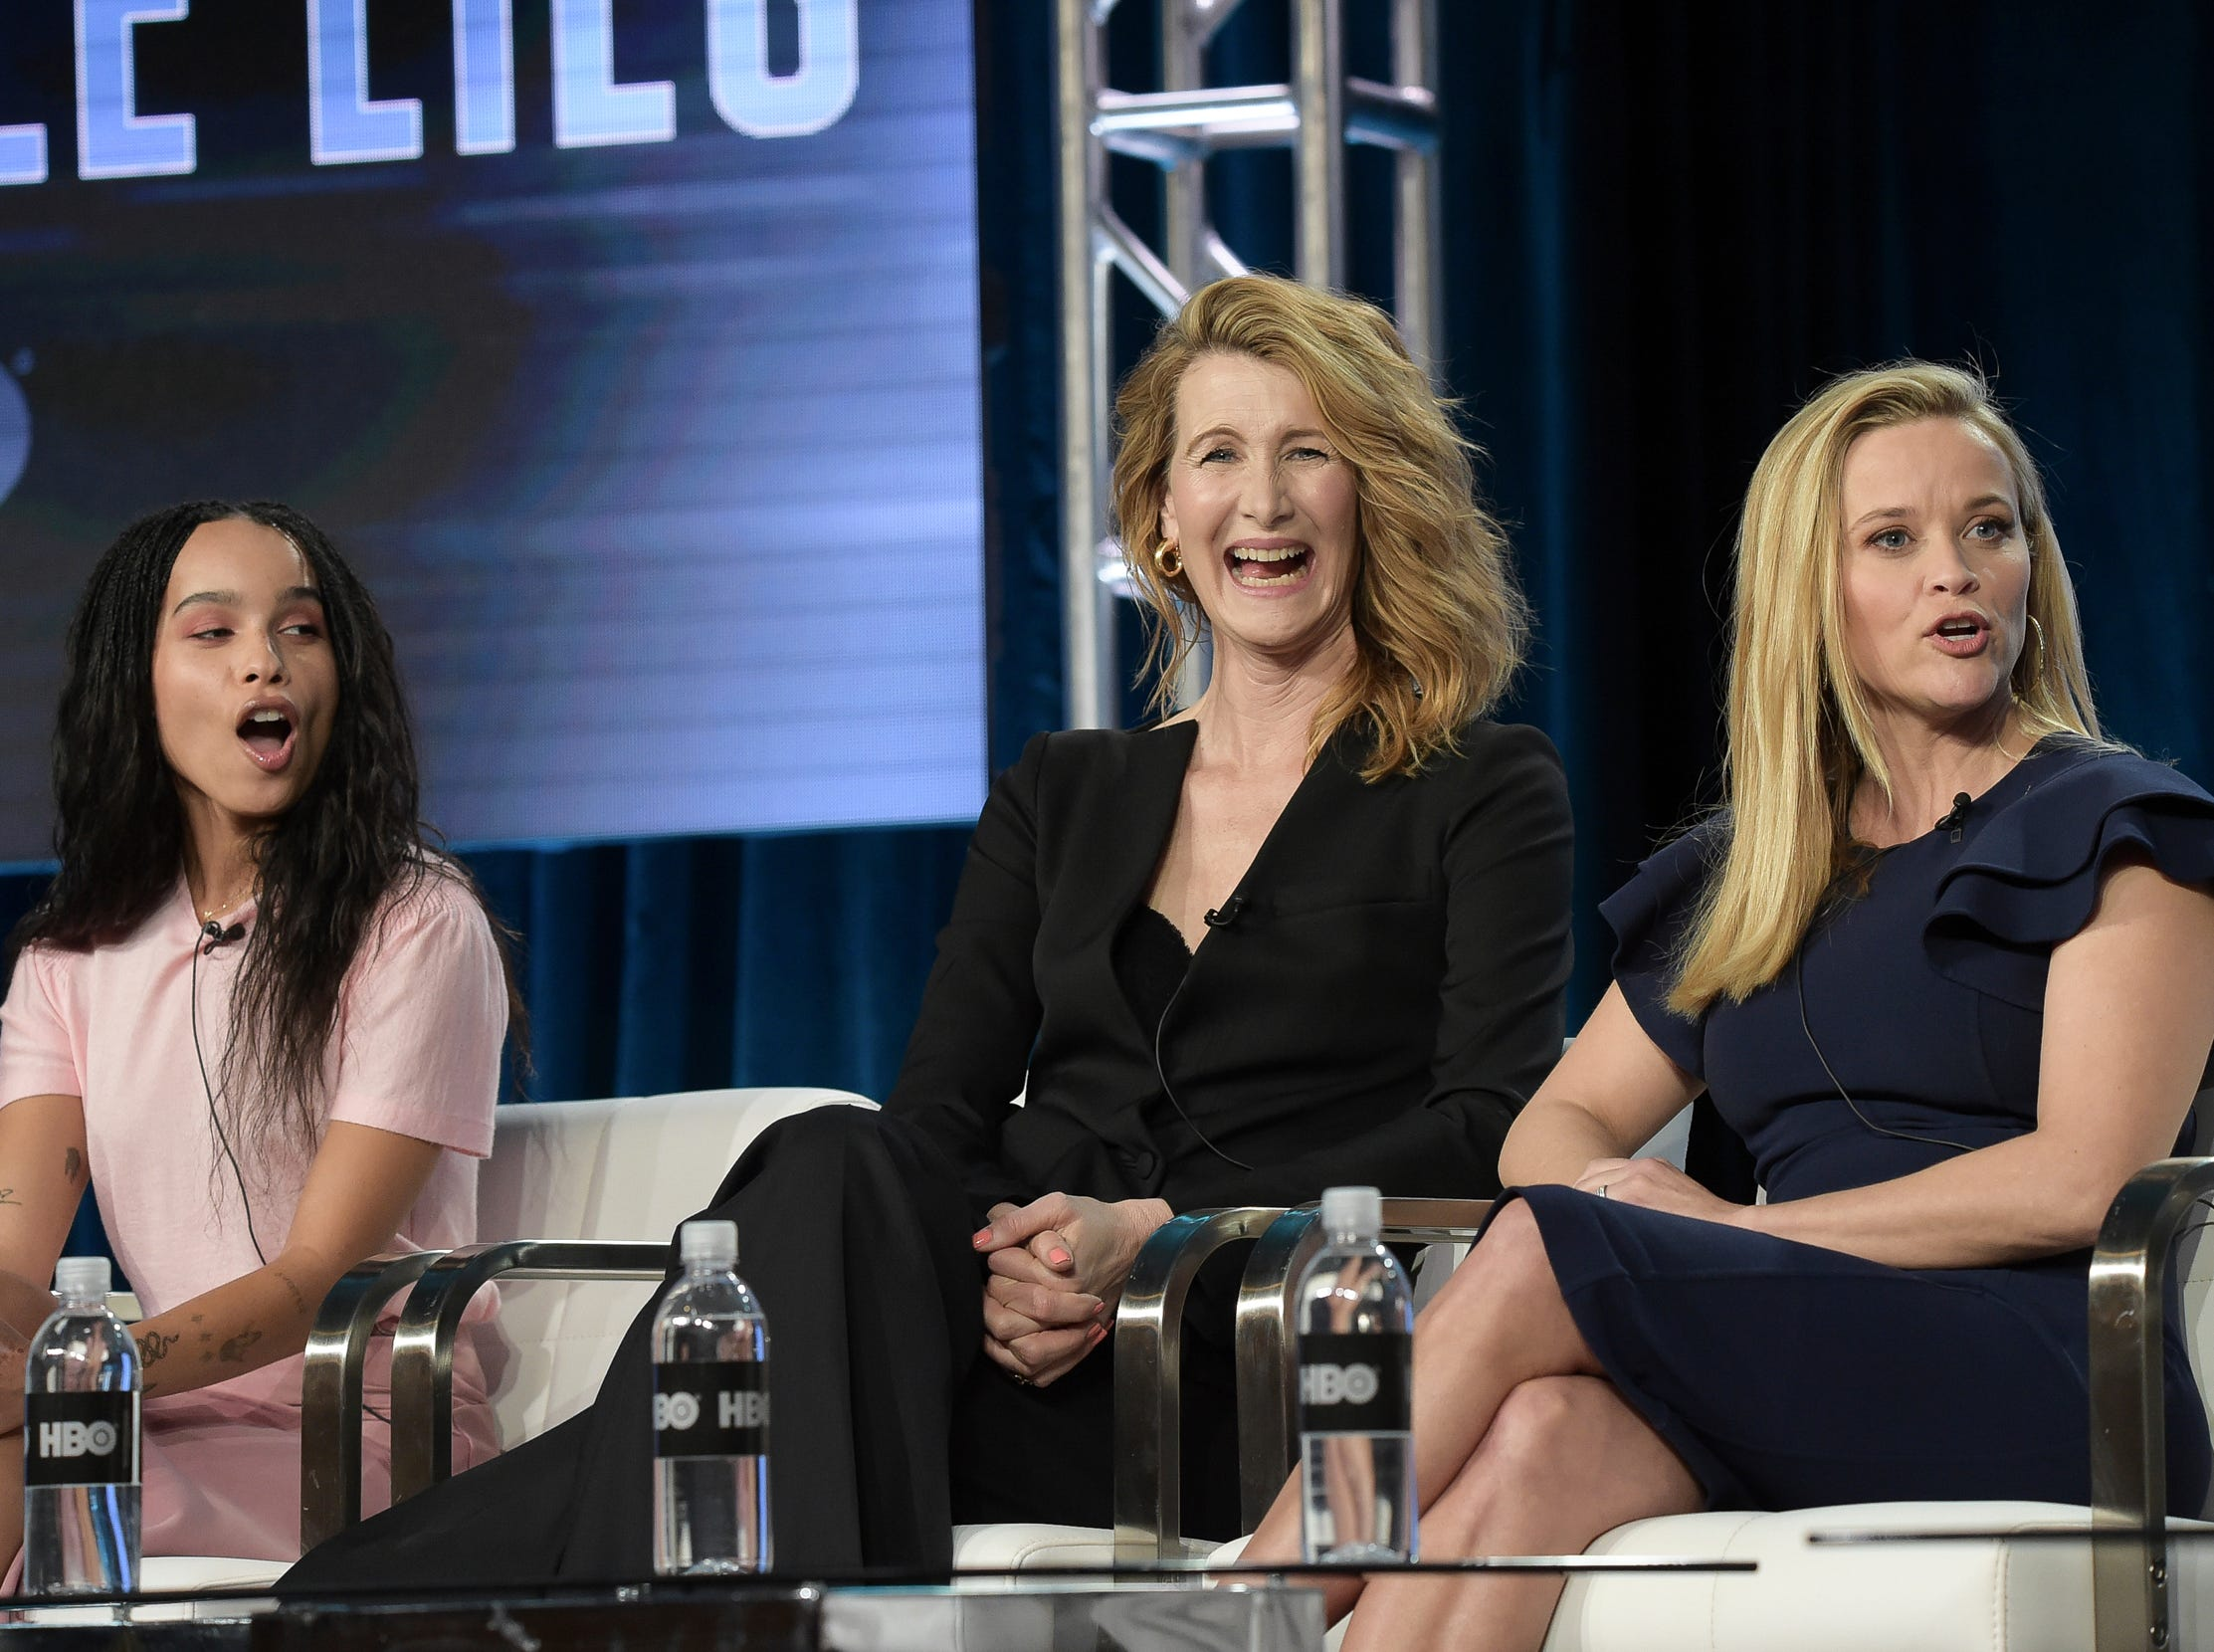 """Zoe Kravitz, Laura Dern and Reese Witherspoon participate in the """"Big Little Lies"""" panel."""